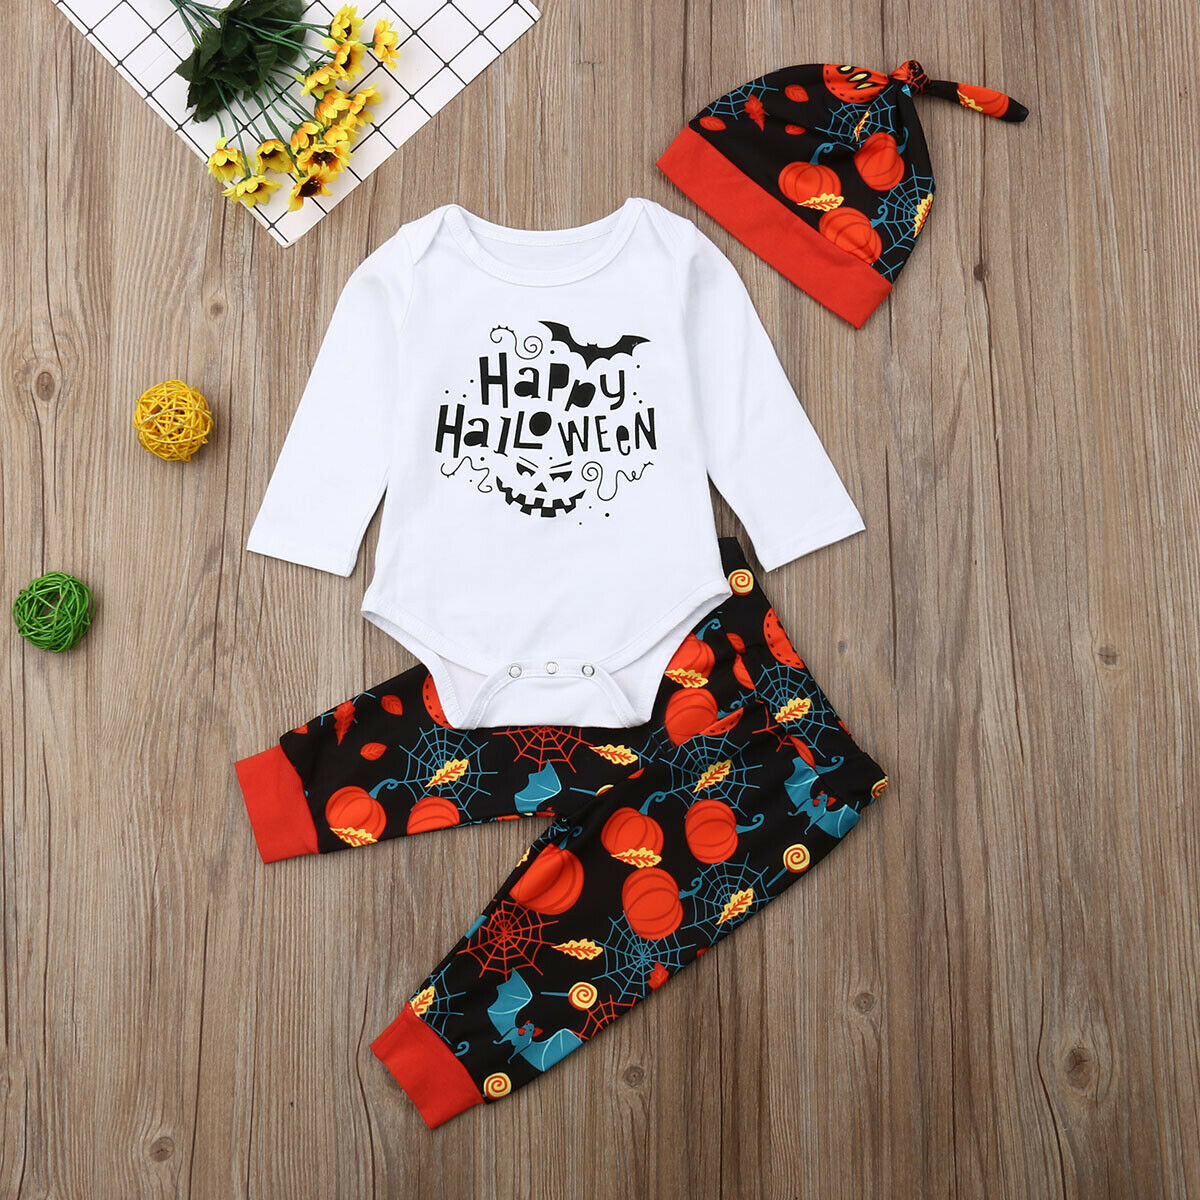 0 24M Newborn Baby Girl Boy Halloween Long Sleeve Romper Clothes 4 Piece Set Headband Pumpkin Pants Hat Headband in Clothing Sets from Mother Kids